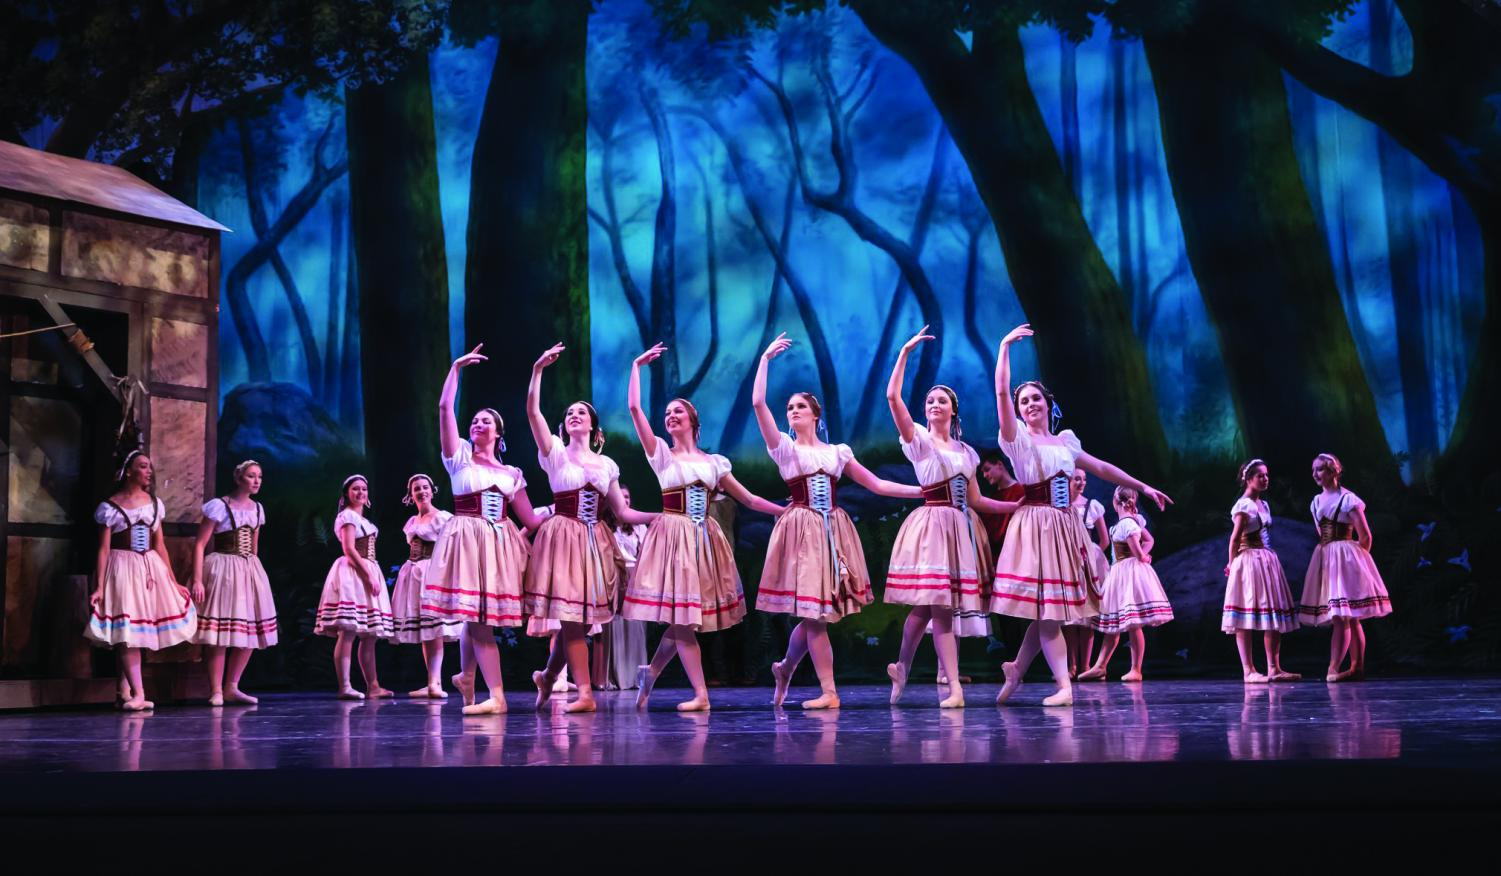 'Giselle' ballet gave audience the 'wilis'